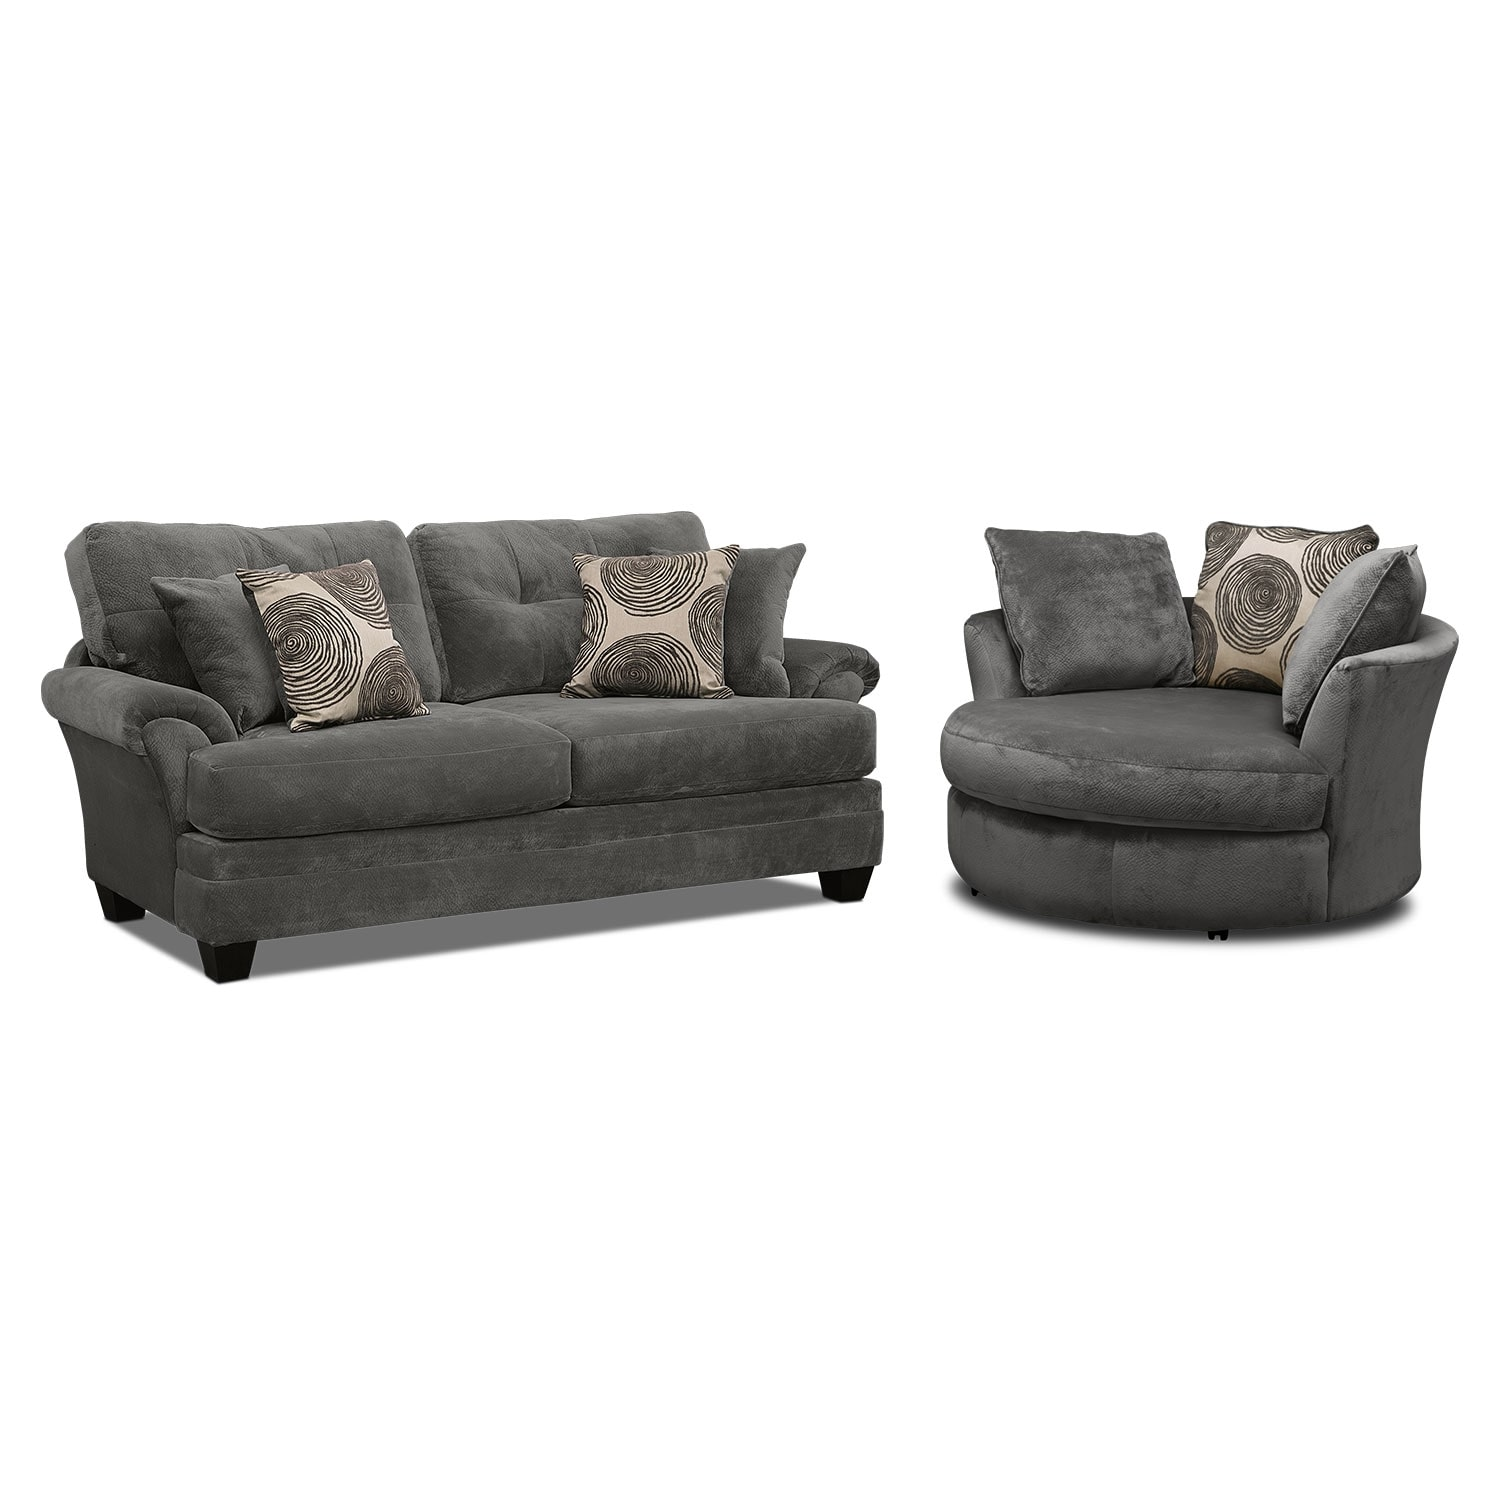 swivel chair value city cosco high manual cordoba gray upholstery 2 pc living room w